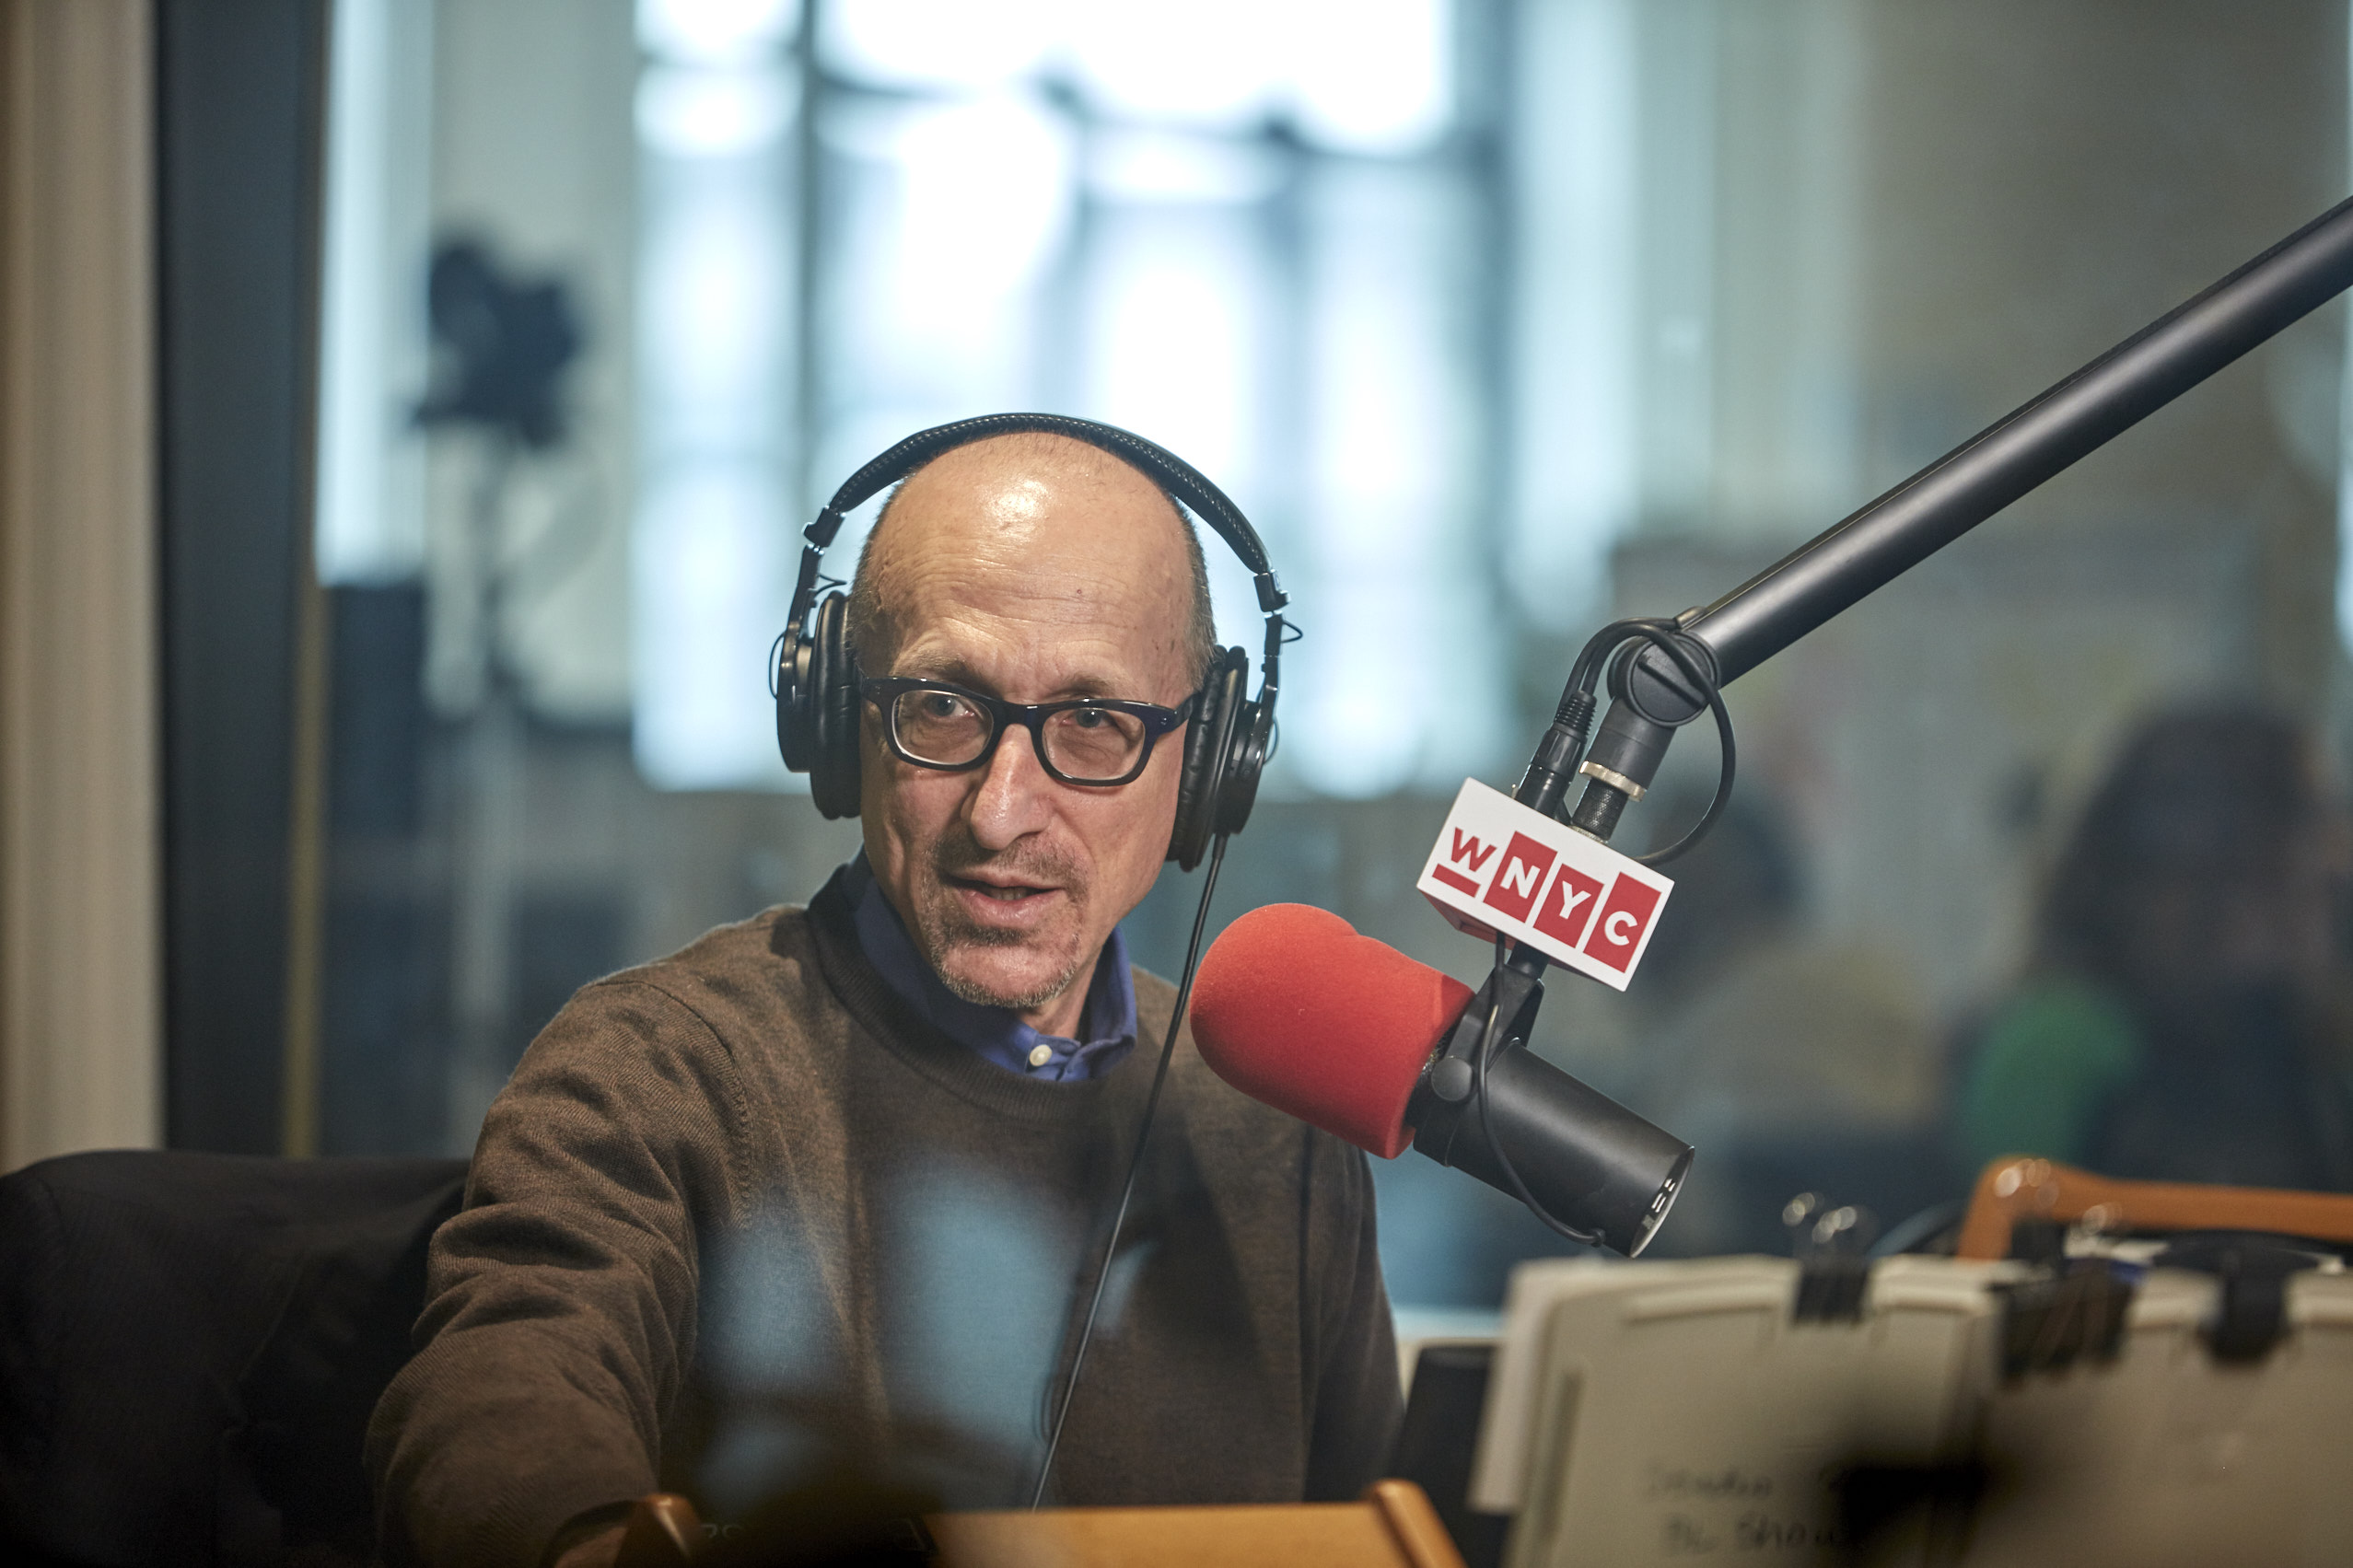 The Brian Lehrer Show Live: Covering Climate Now